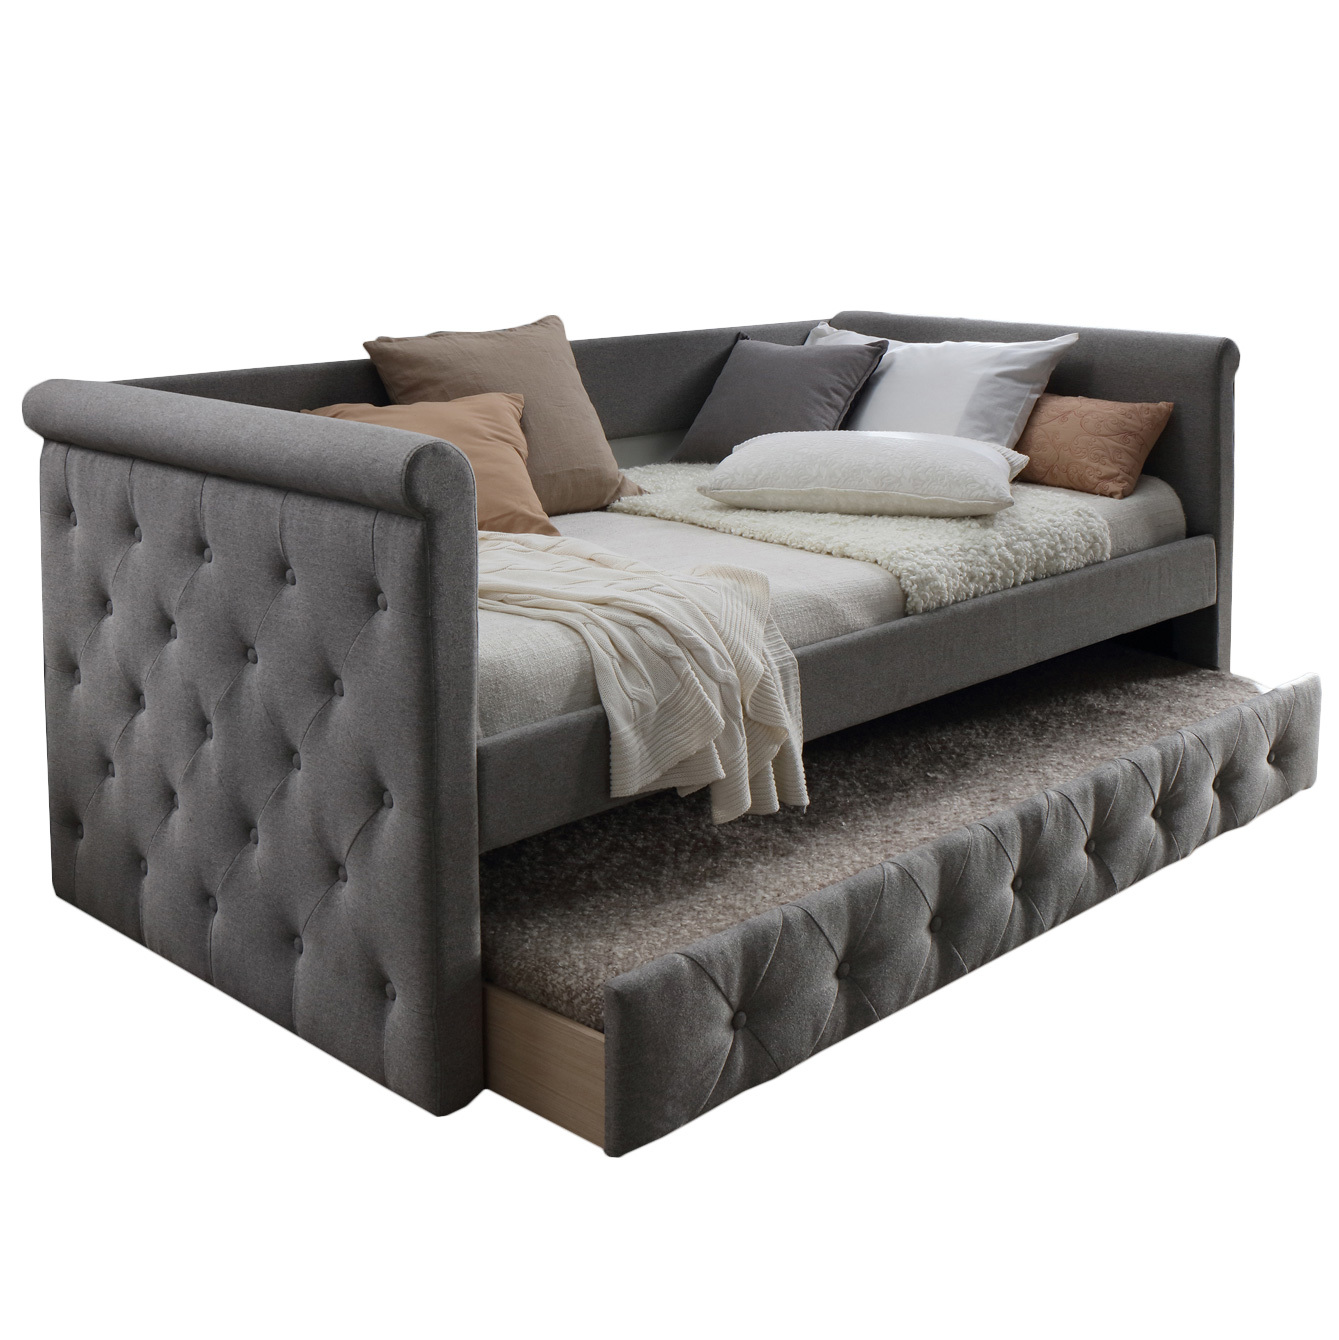 New Arles Single Sofa Daybed With Trundle Vic Furniture